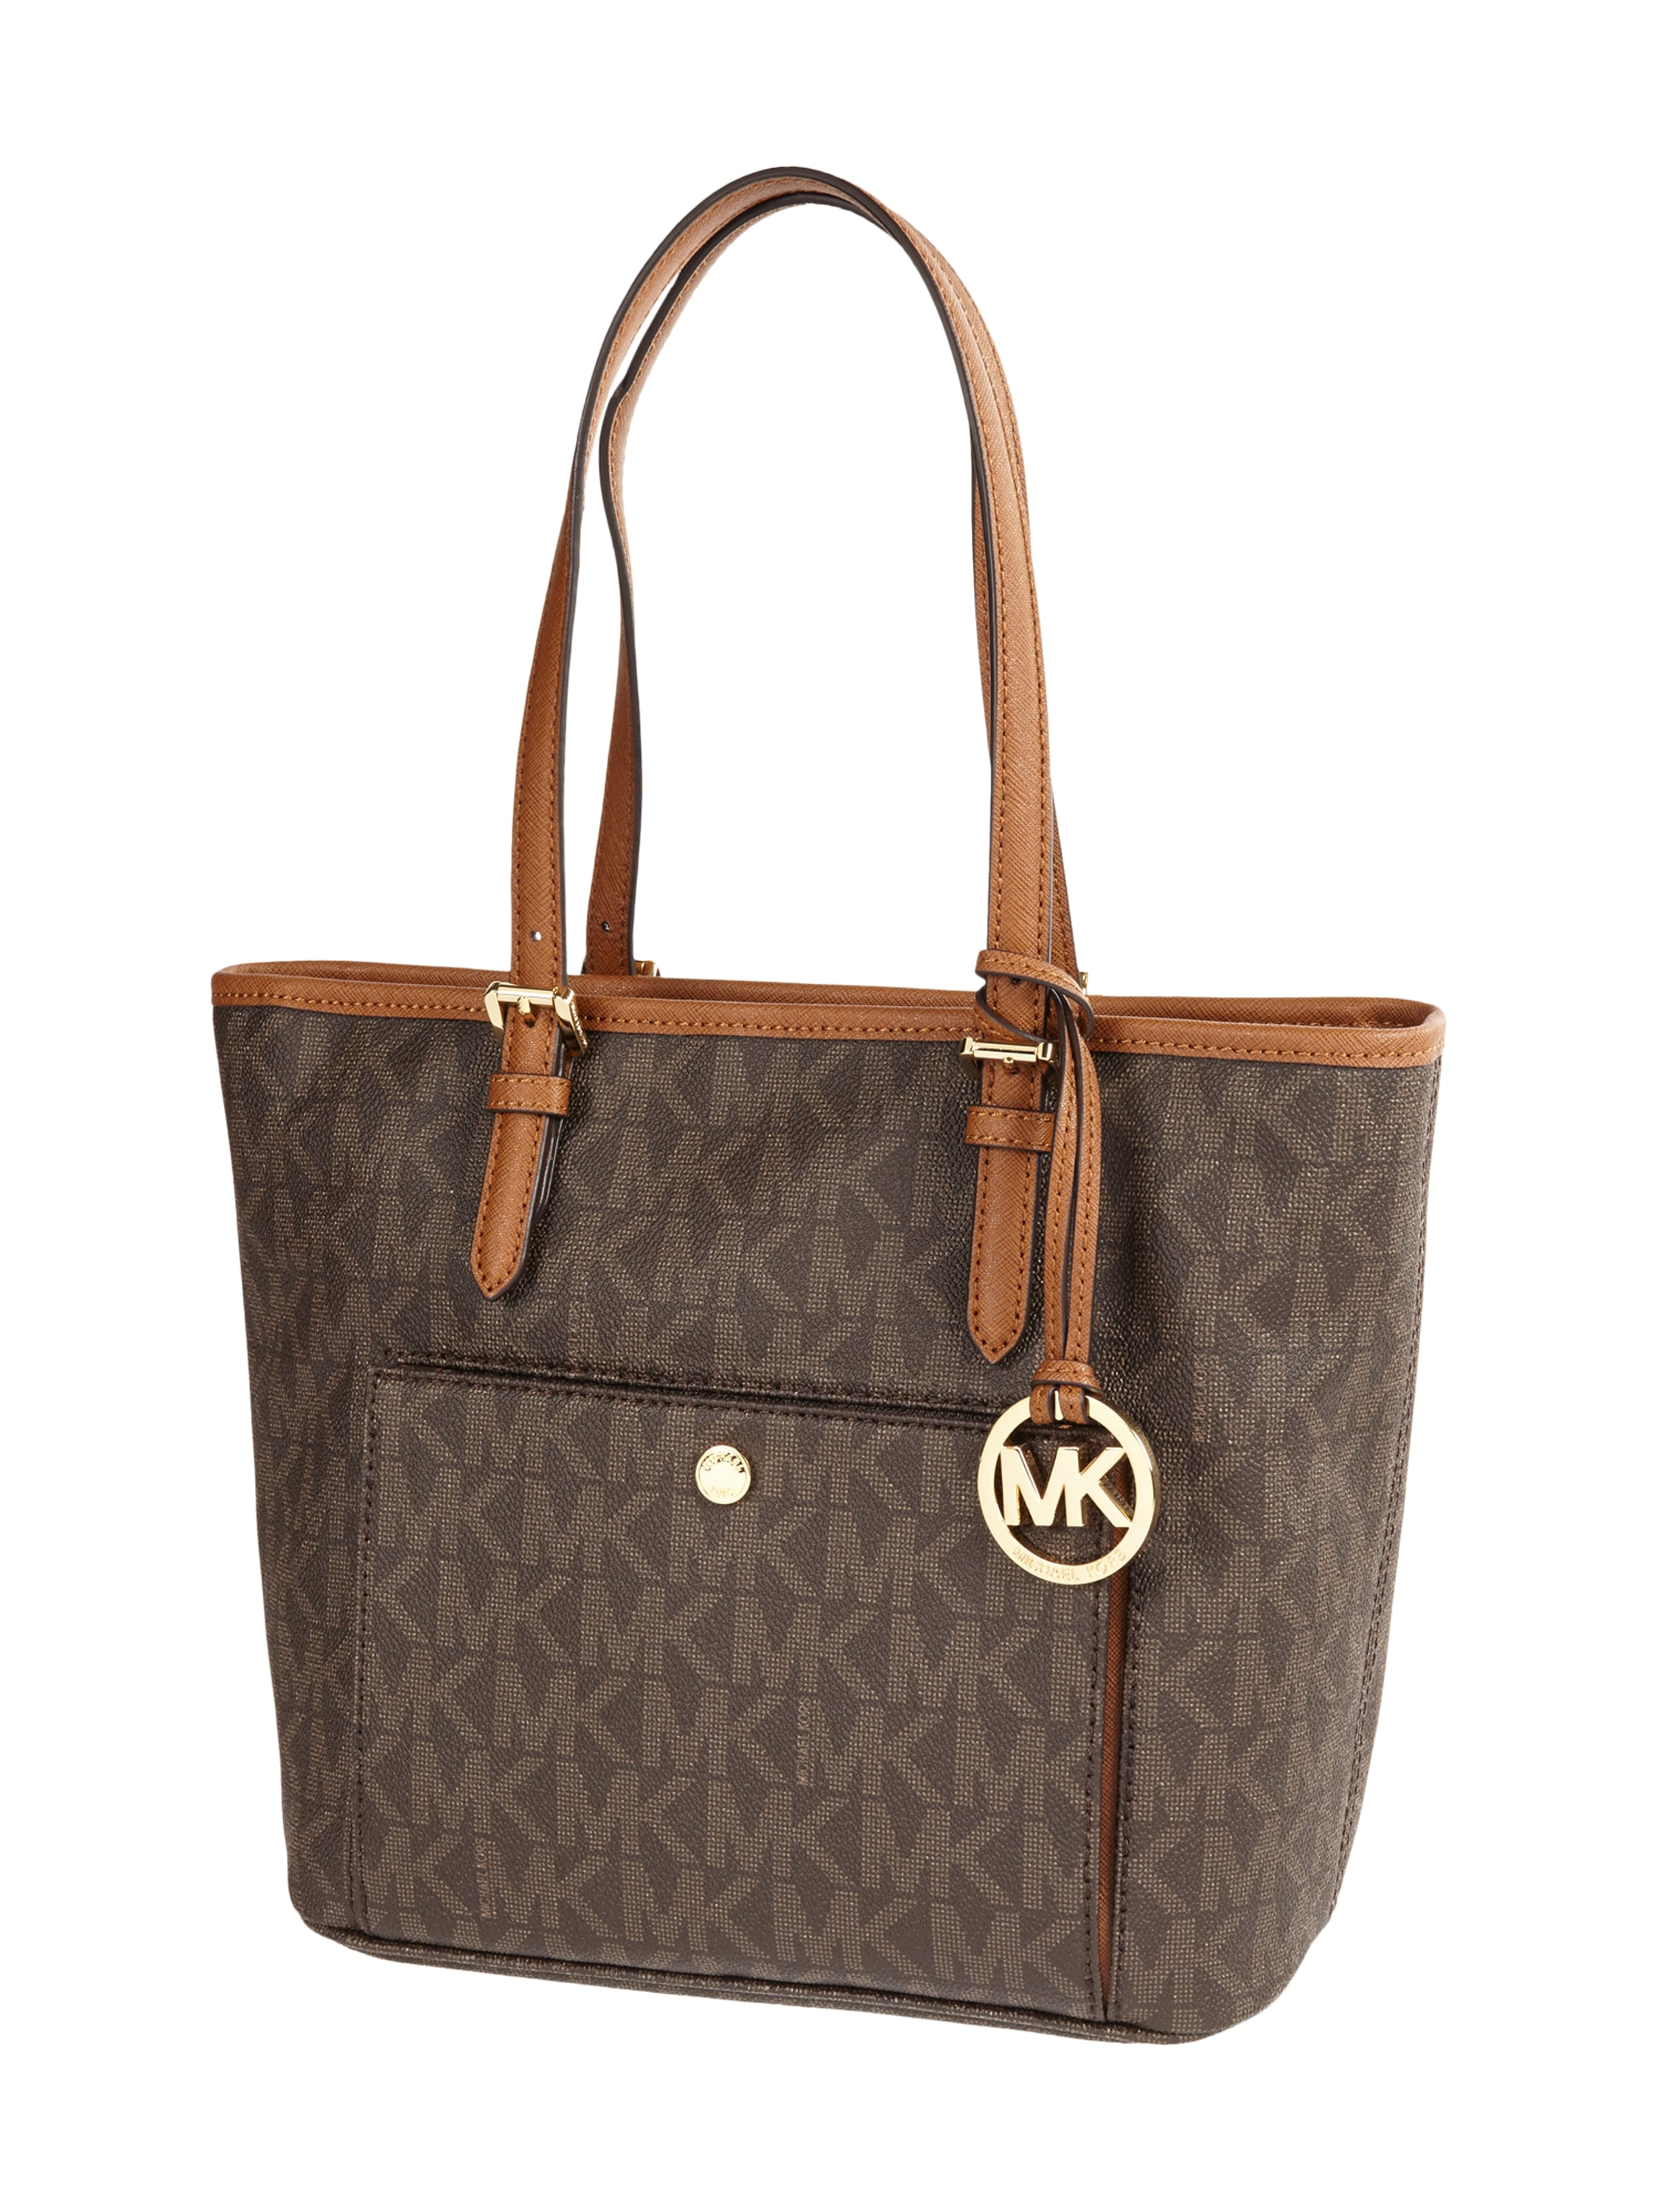 michael michael kors shopper mit logo muster in braun online kaufen 9532994 p c online shop. Black Bedroom Furniture Sets. Home Design Ideas